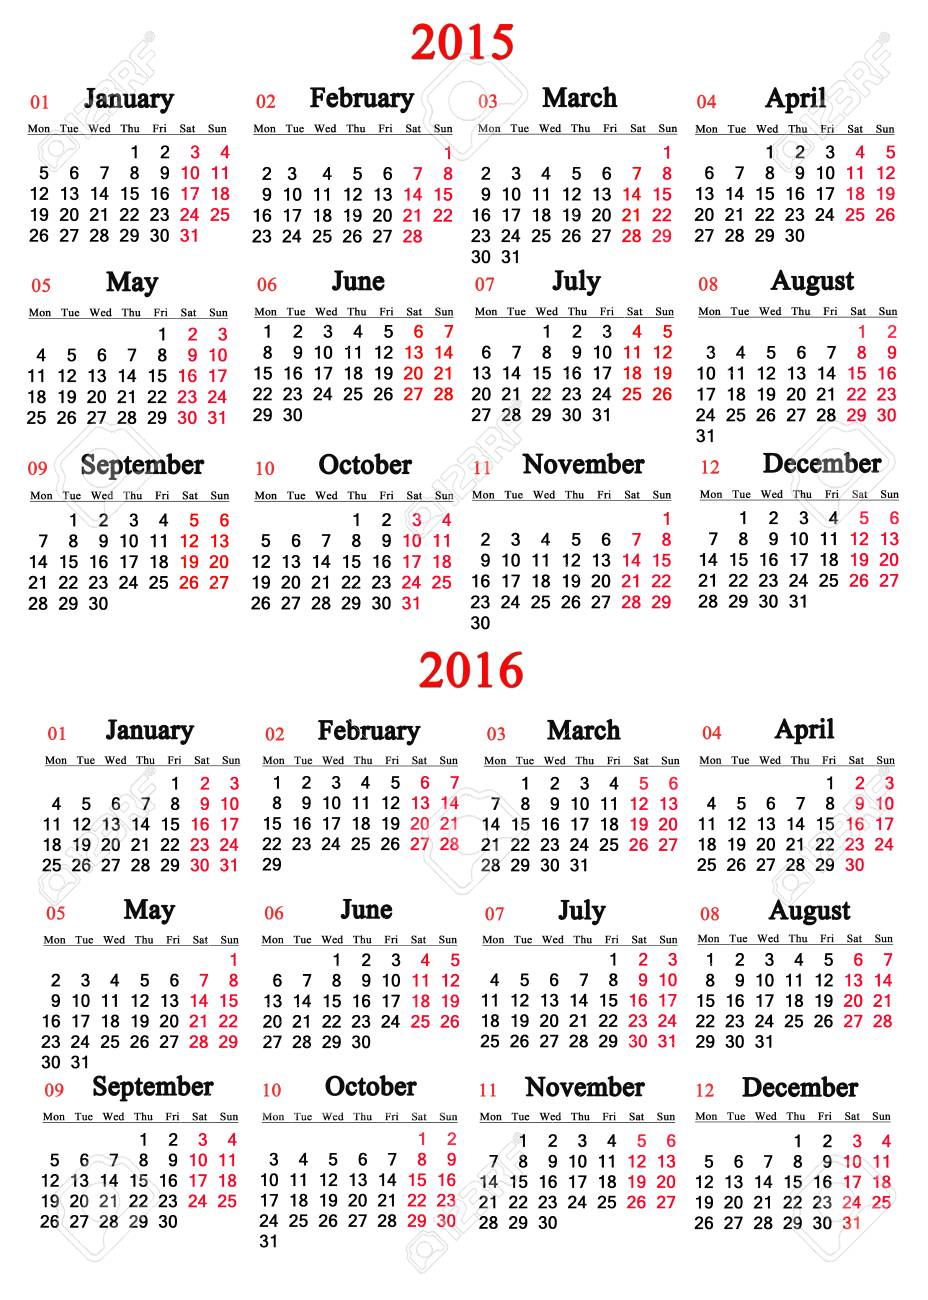 Office Calendar 2016 : Usual office calendar for  years on white background